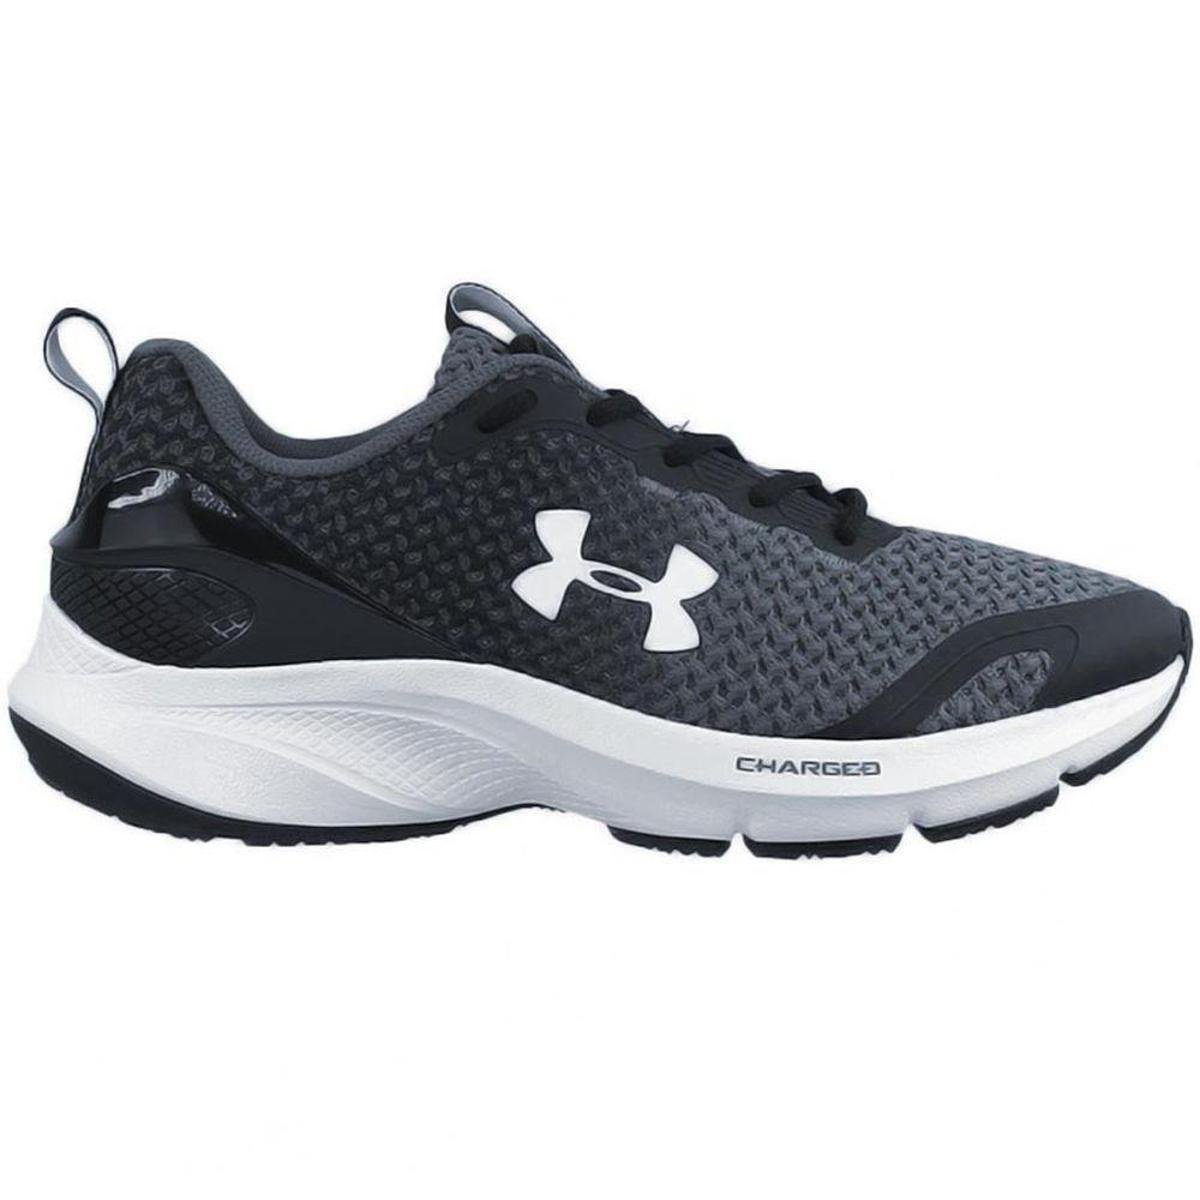 Tênis Under Armour Charged Prompt Masculino - Preto/Cinza